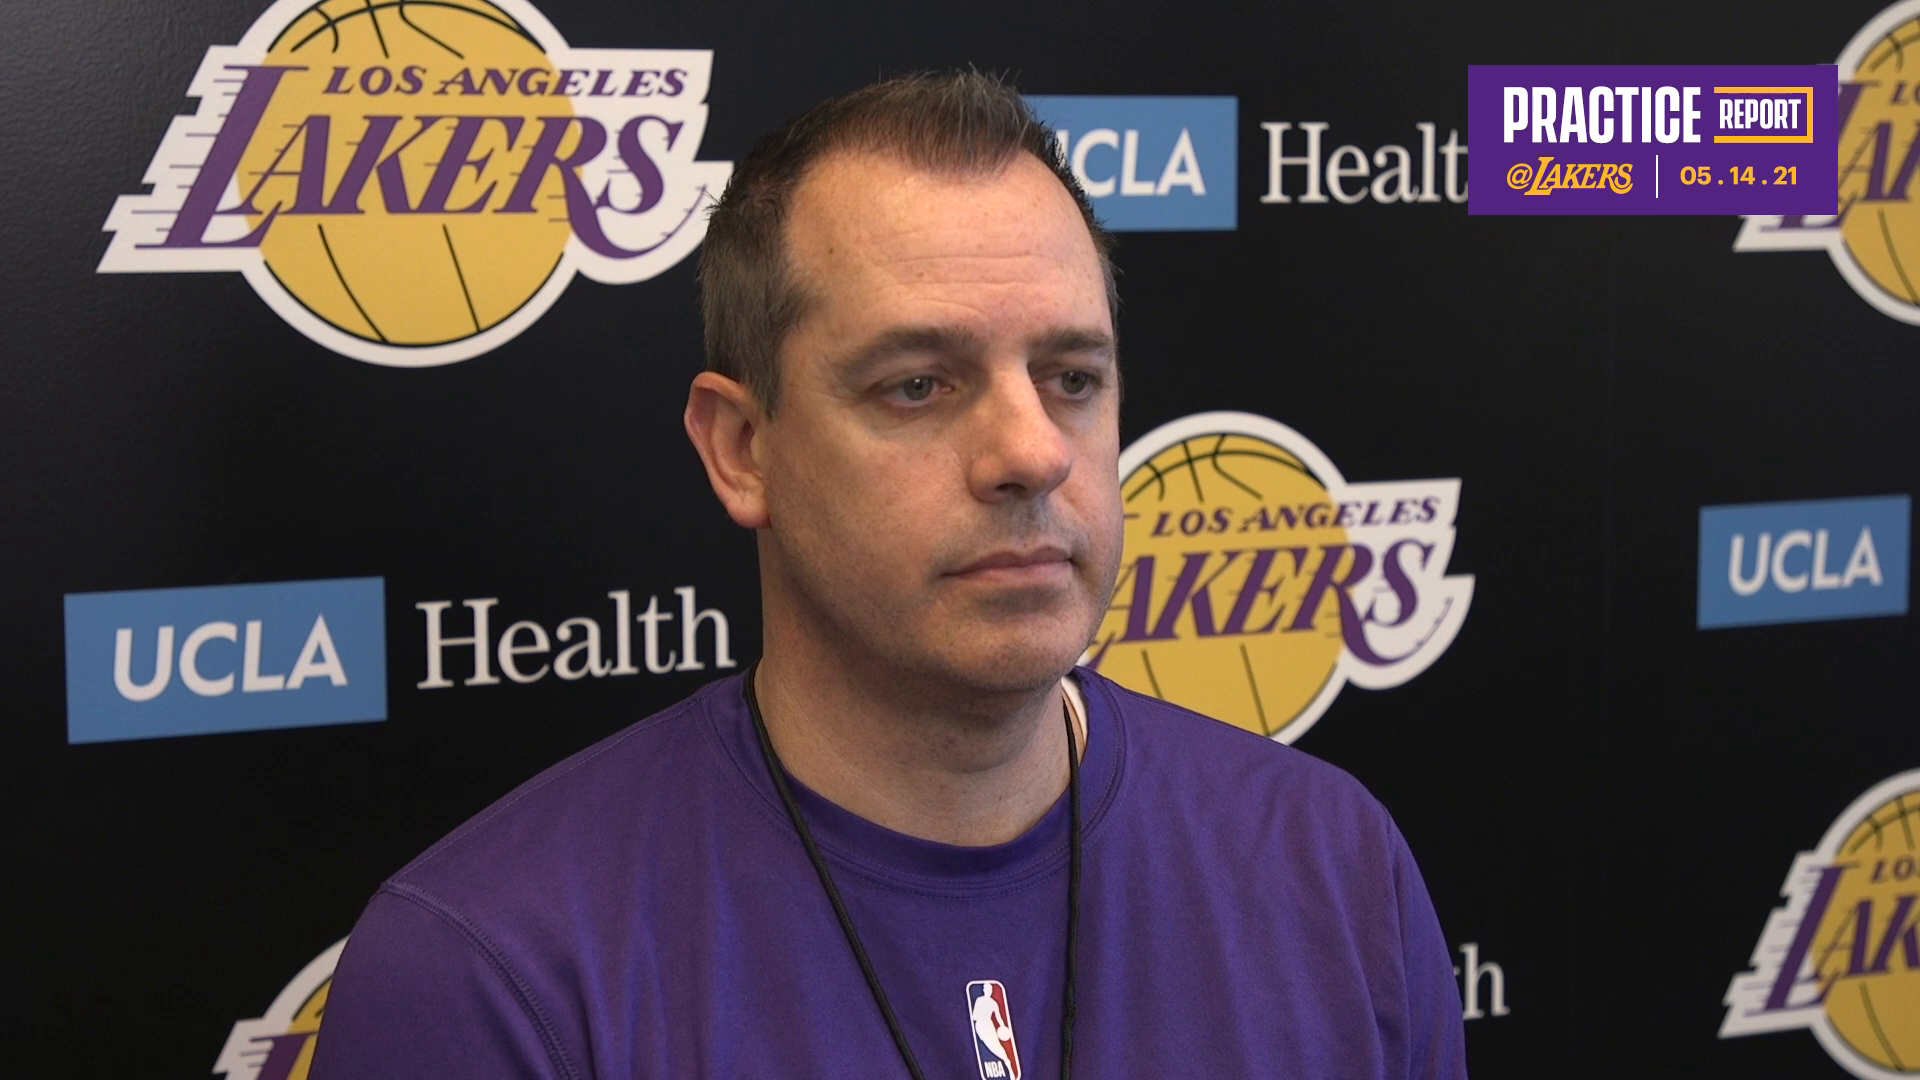 Lakers Practice Report: Frank Vogel (5/14/21)